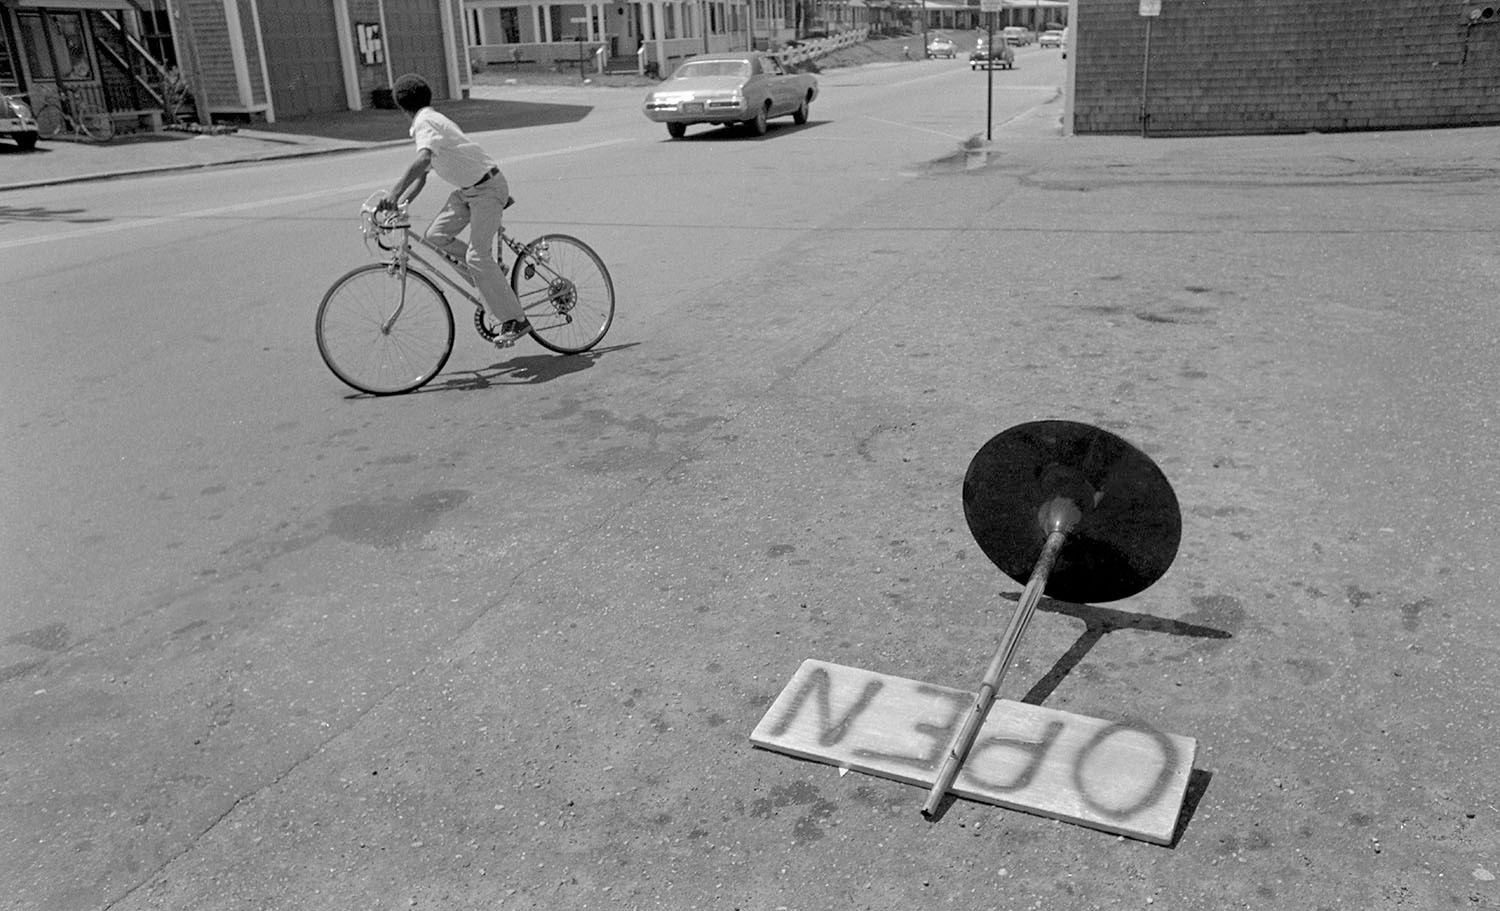 Fallen Sign and Bicyclist